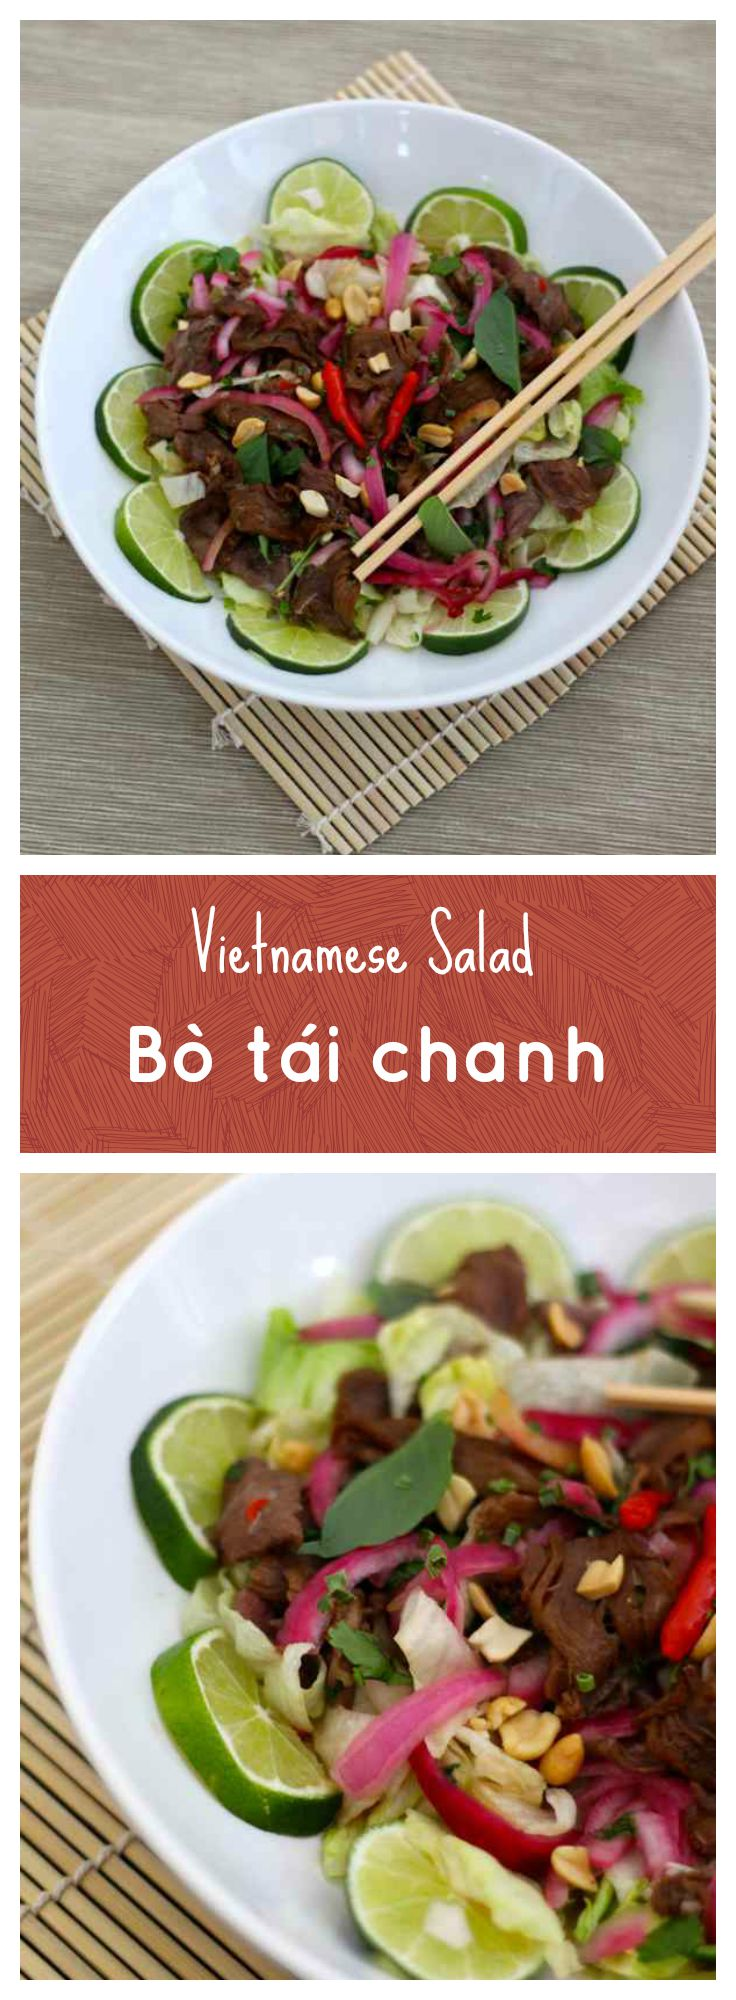 Bò tái chanh is a Vietnamese salad based on beef that is prepared raw or underdone by cooking it in lime juice, and served with other herbs and ingredients.